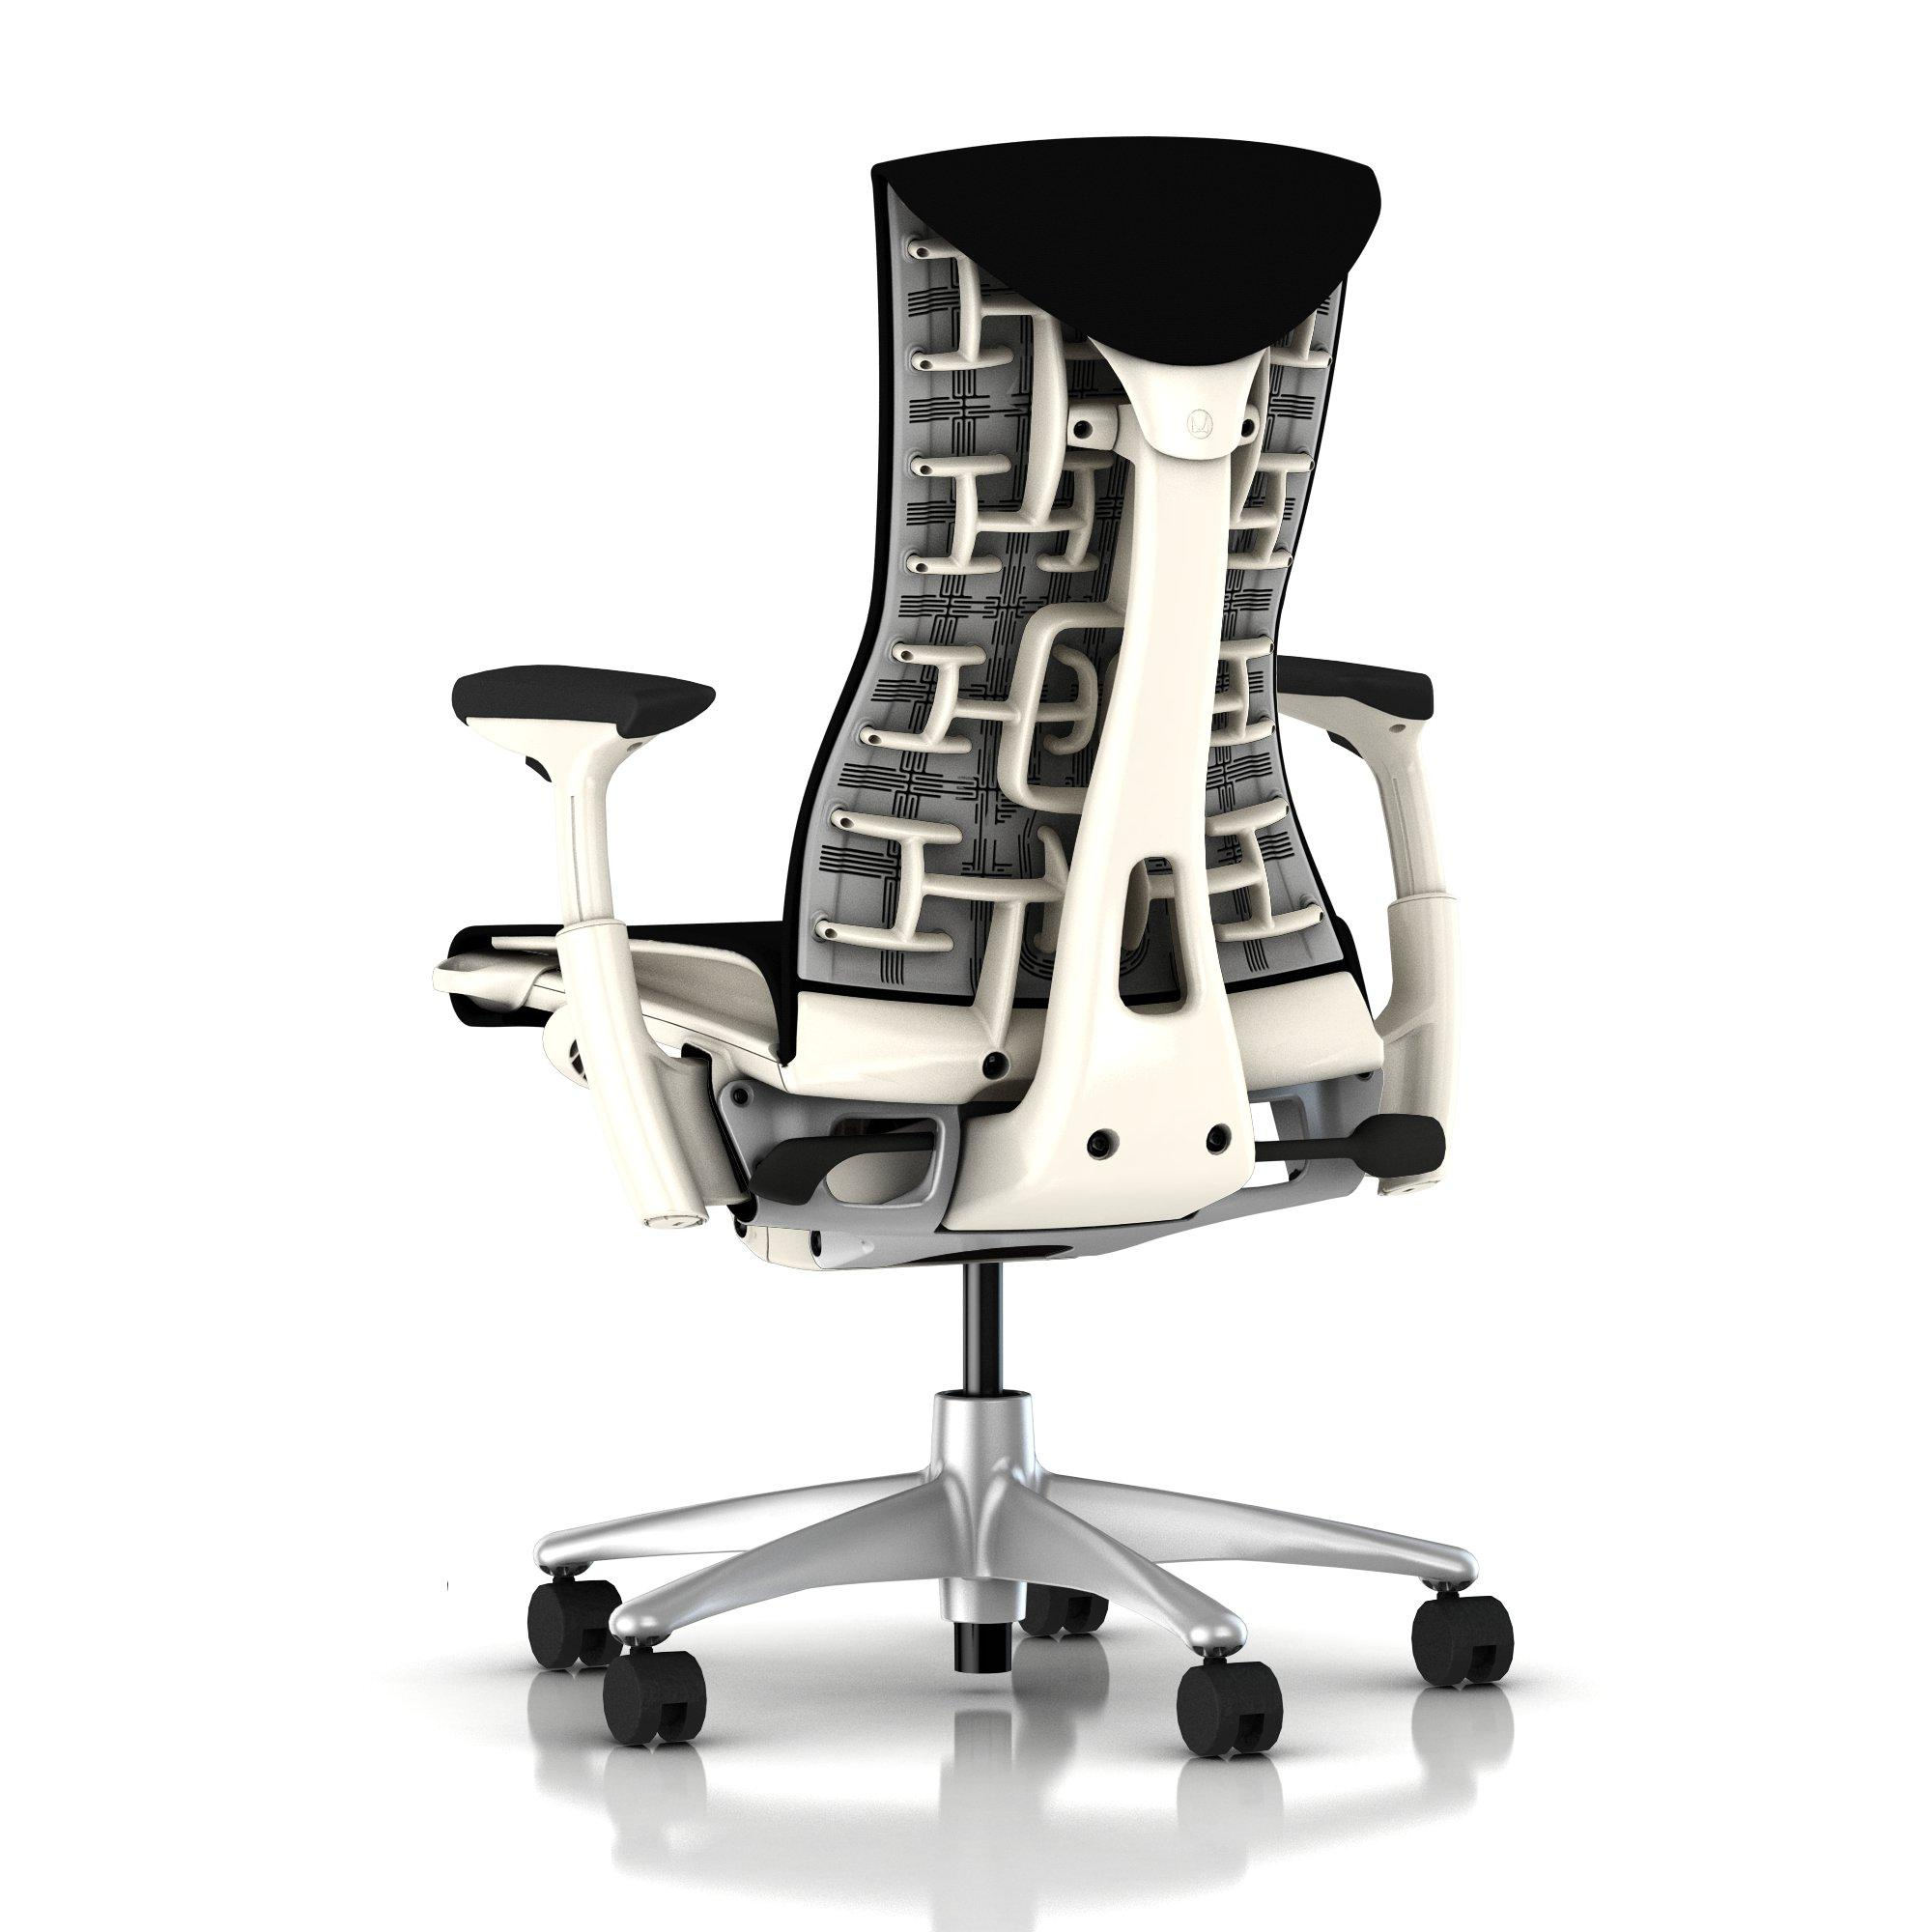 Herman Miller Embody Chair Black Rhythm with White Frame and